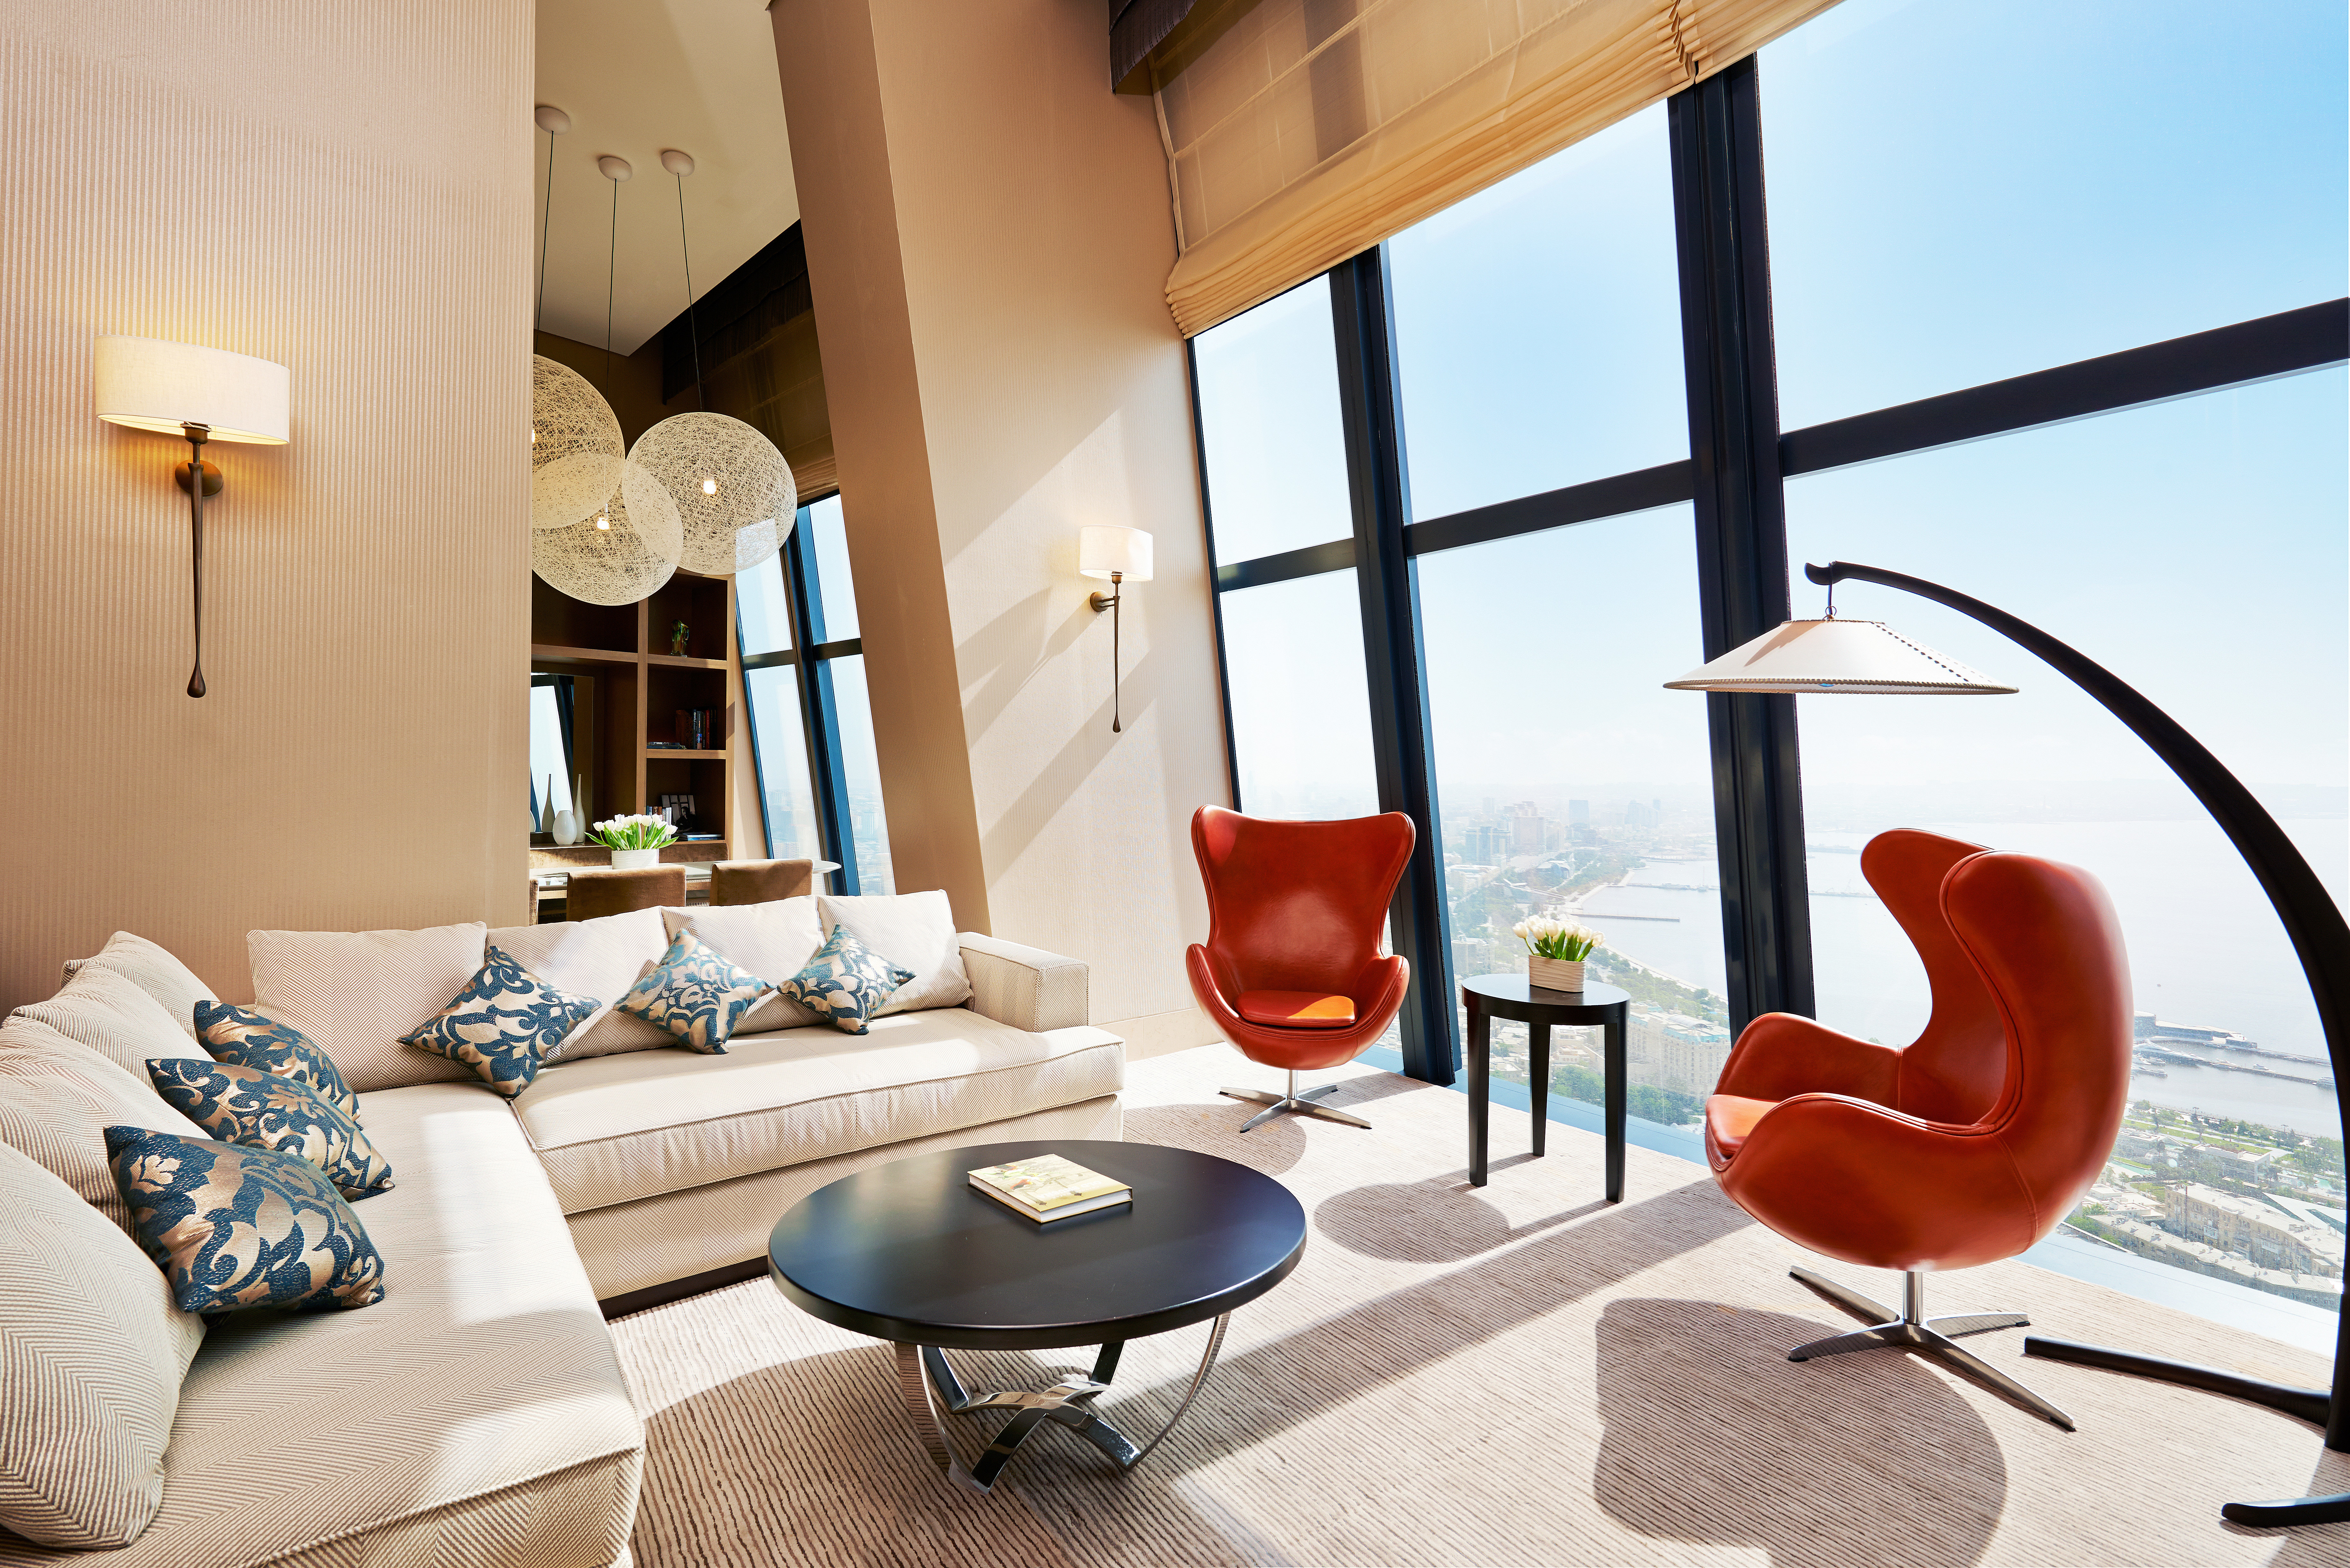 Hip Lounge Luxury Modern Scenic views property living room home Suite